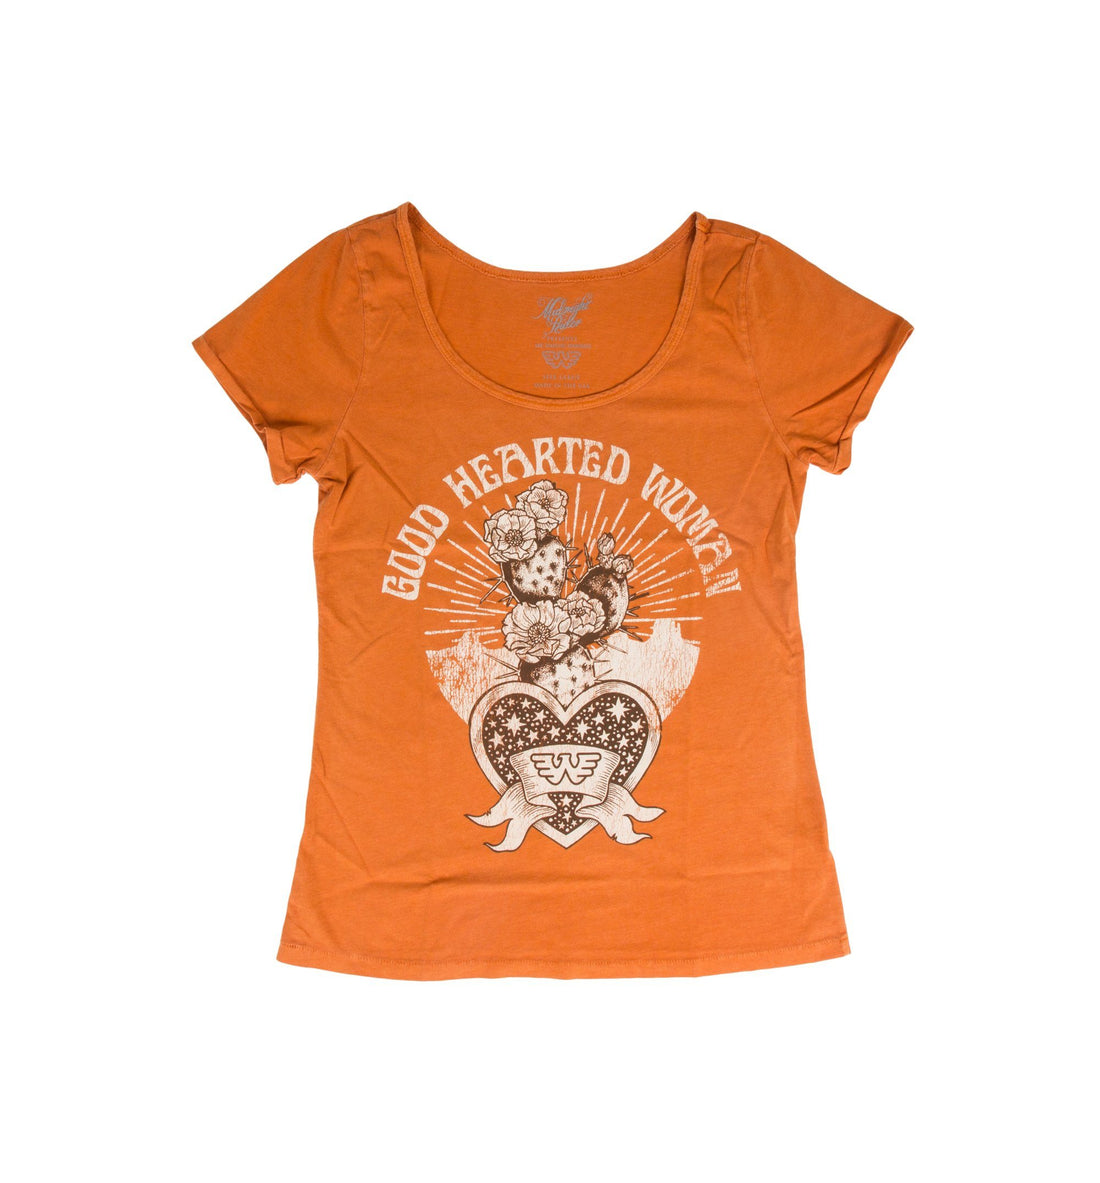 Midnight Rider - Good Hearted Woman Ballet Tee - Tops - Iron and Resin